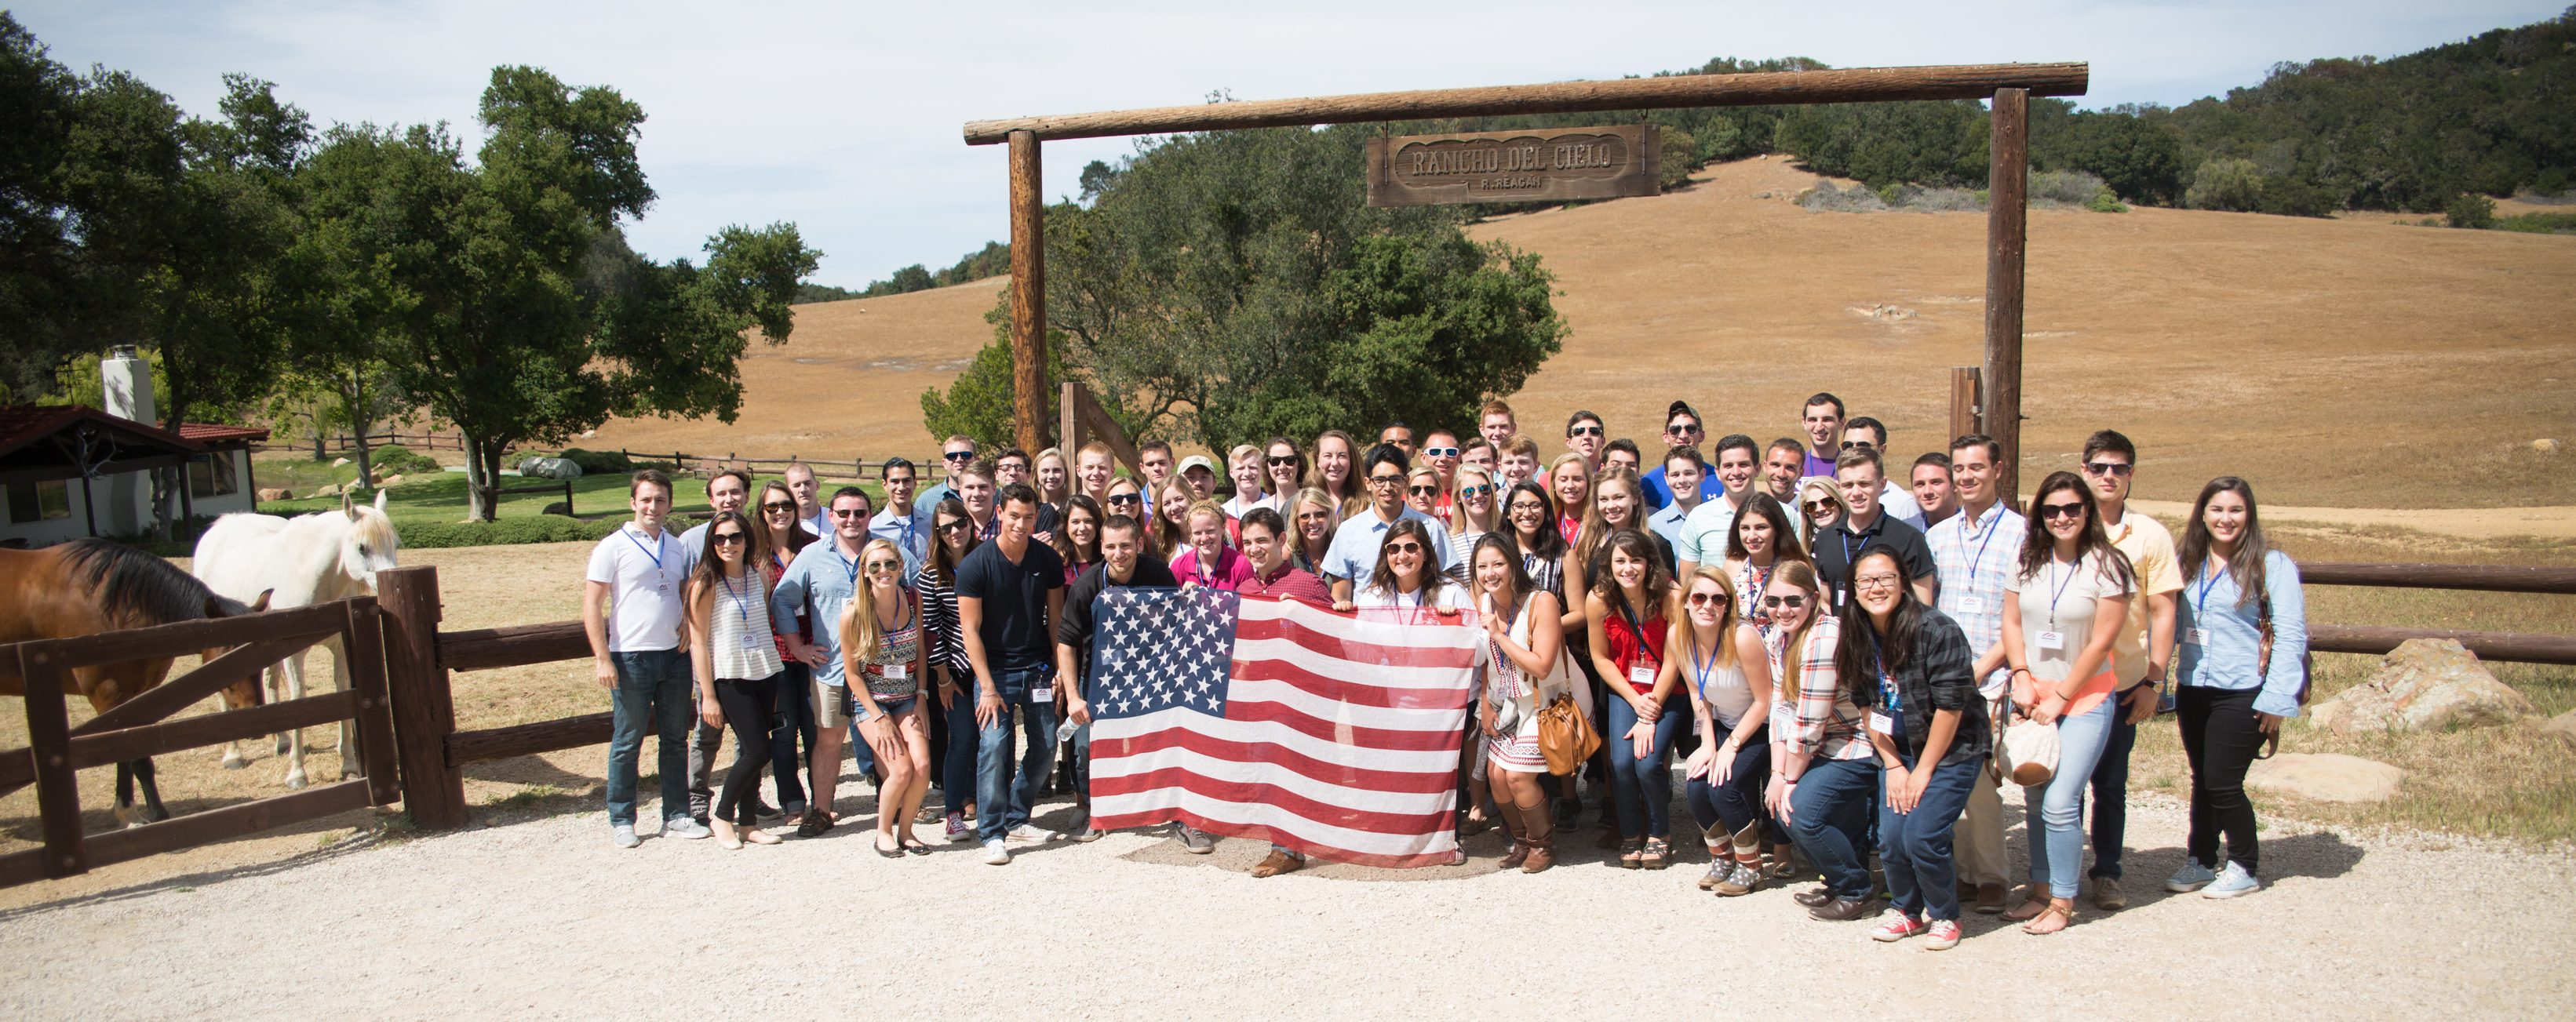 <br><br><h1><strong>Unforgettable Experiences: Attend A YAF Student Conference or Activism Training Seminar</strong></h1>